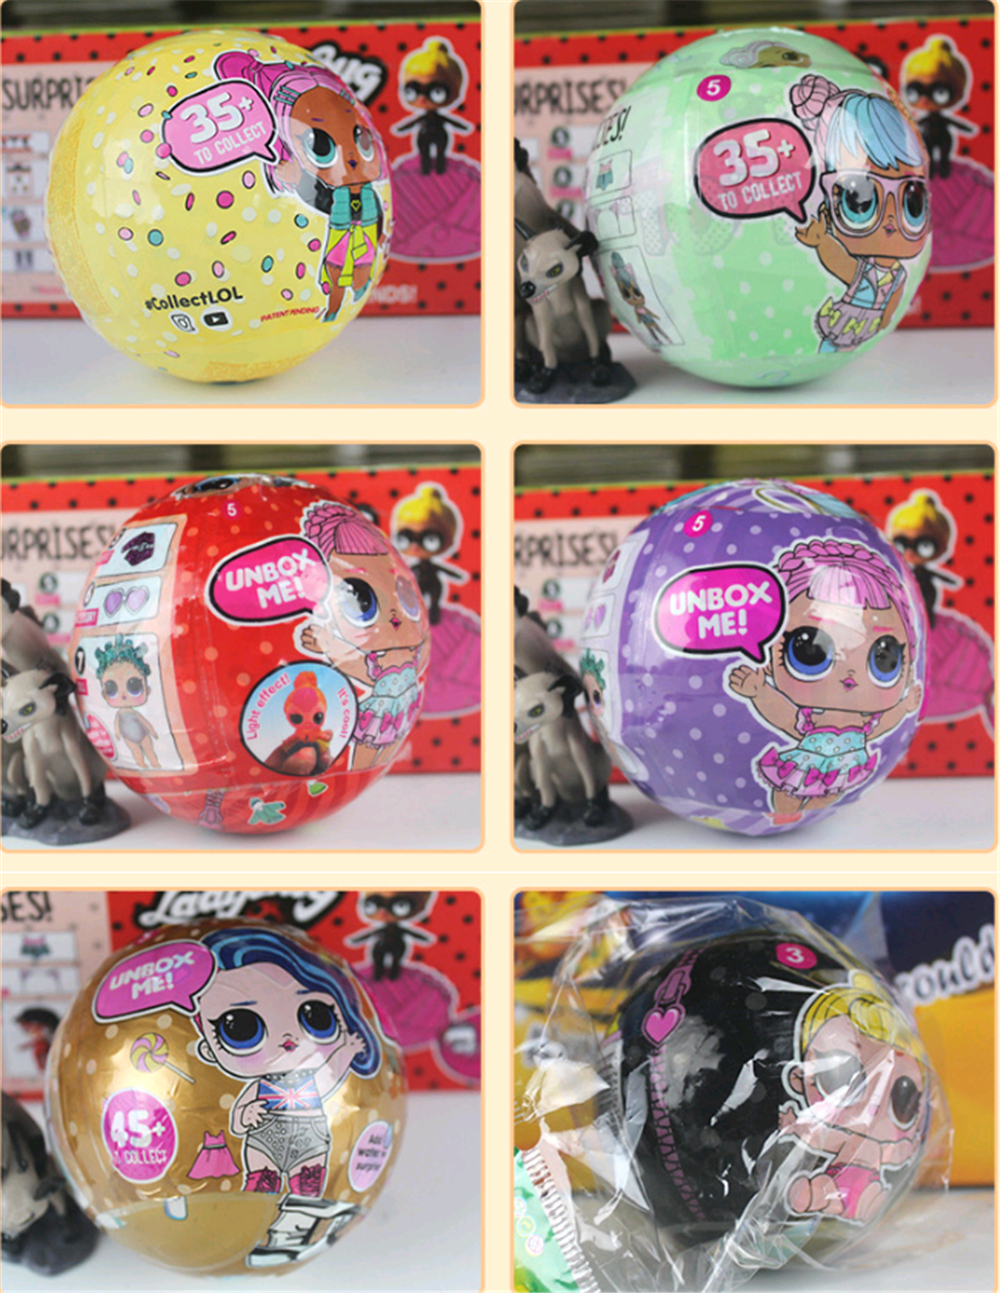 lol Doll 3 Mermaid Figures Little Girls Figures In Ball Lps Pets In Boneca Eggs Ball